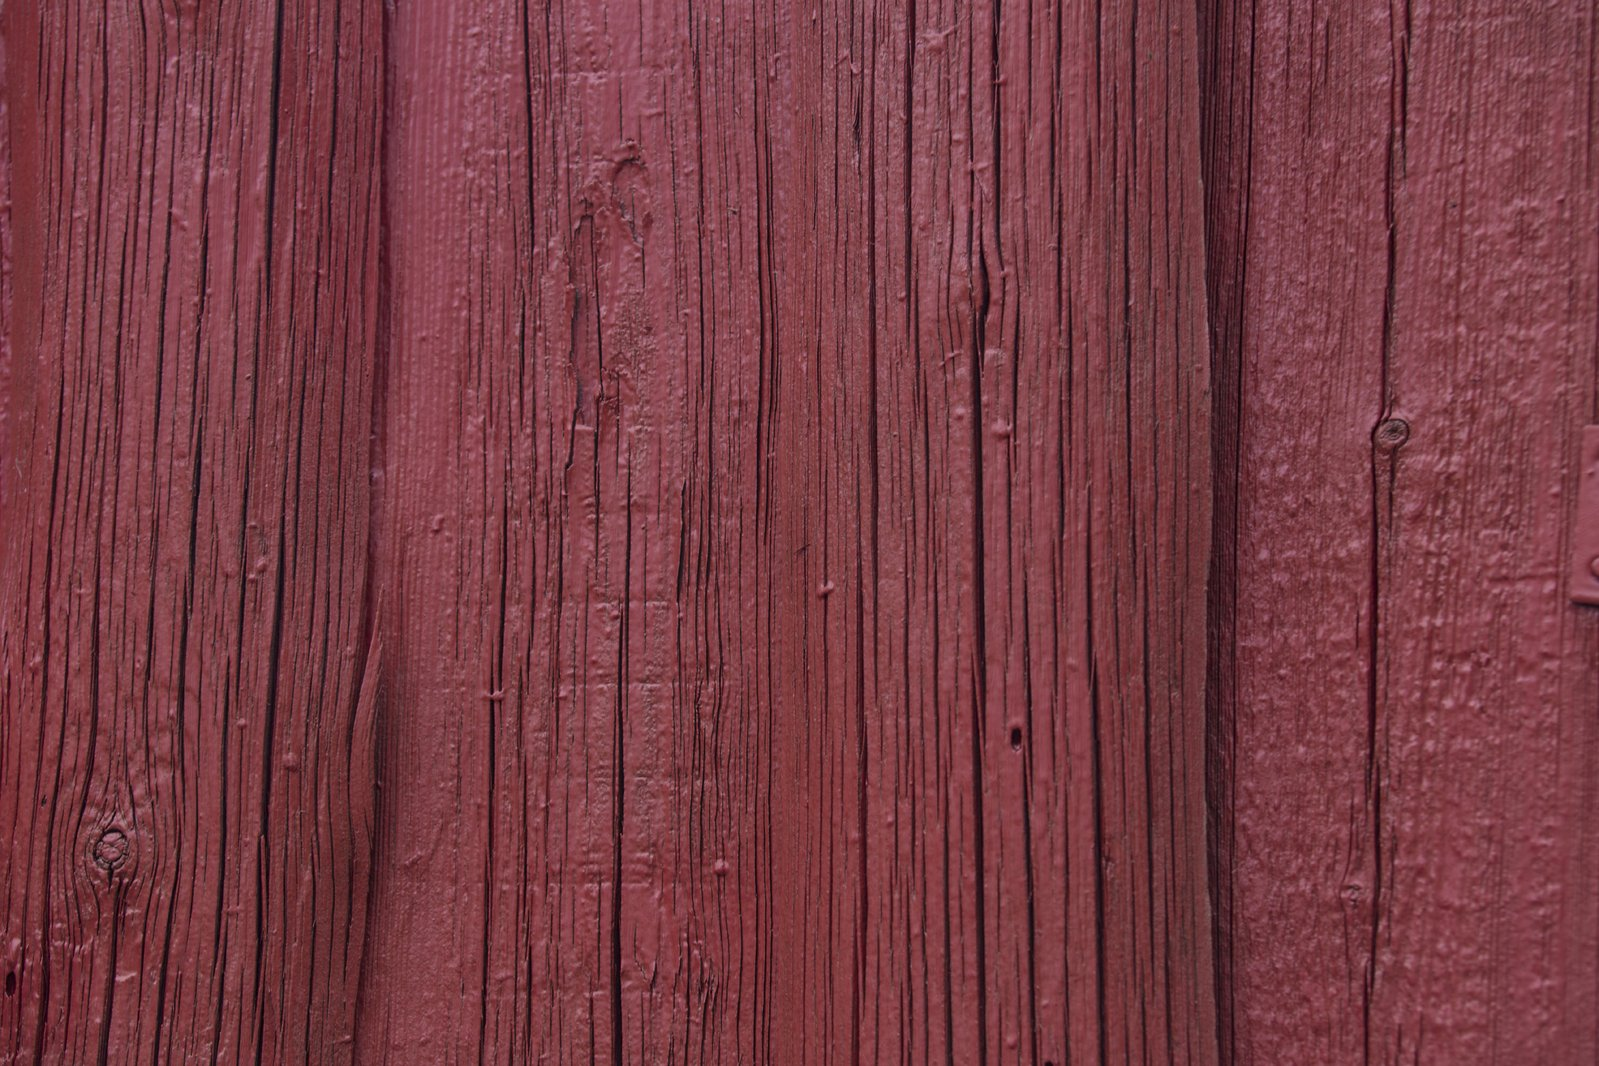 Free Red Wooden Vintage Style Texture  Natural Rustic Old